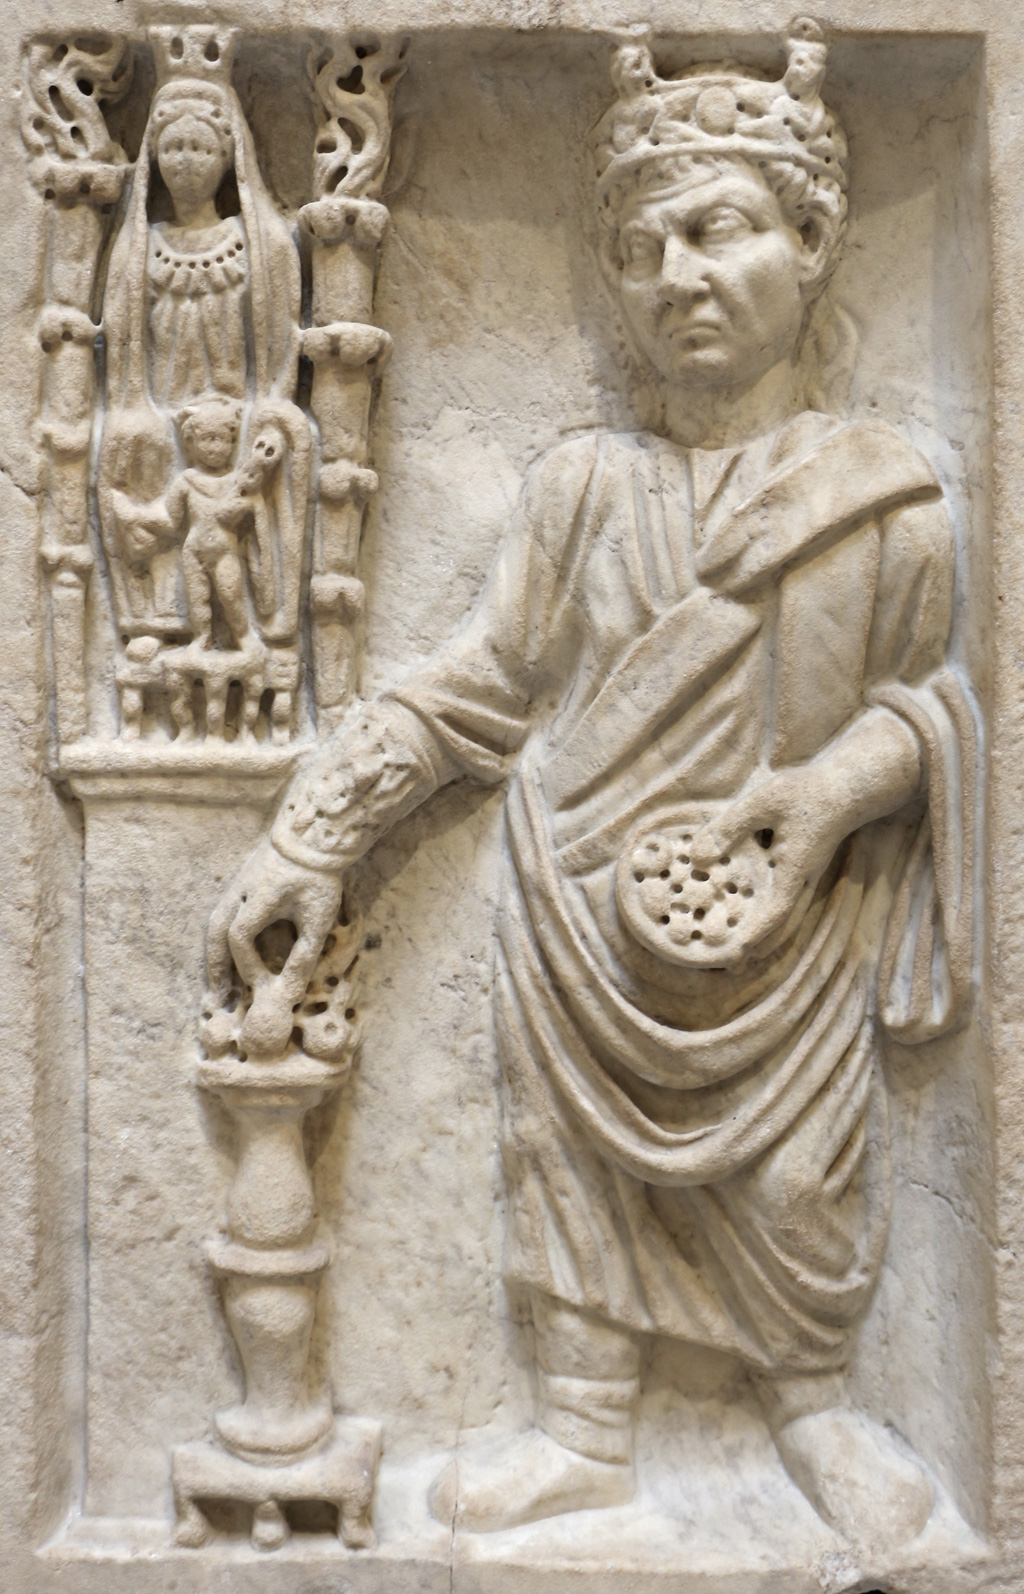 Archigallus making sacrifice to Great Mother goddess Cybele